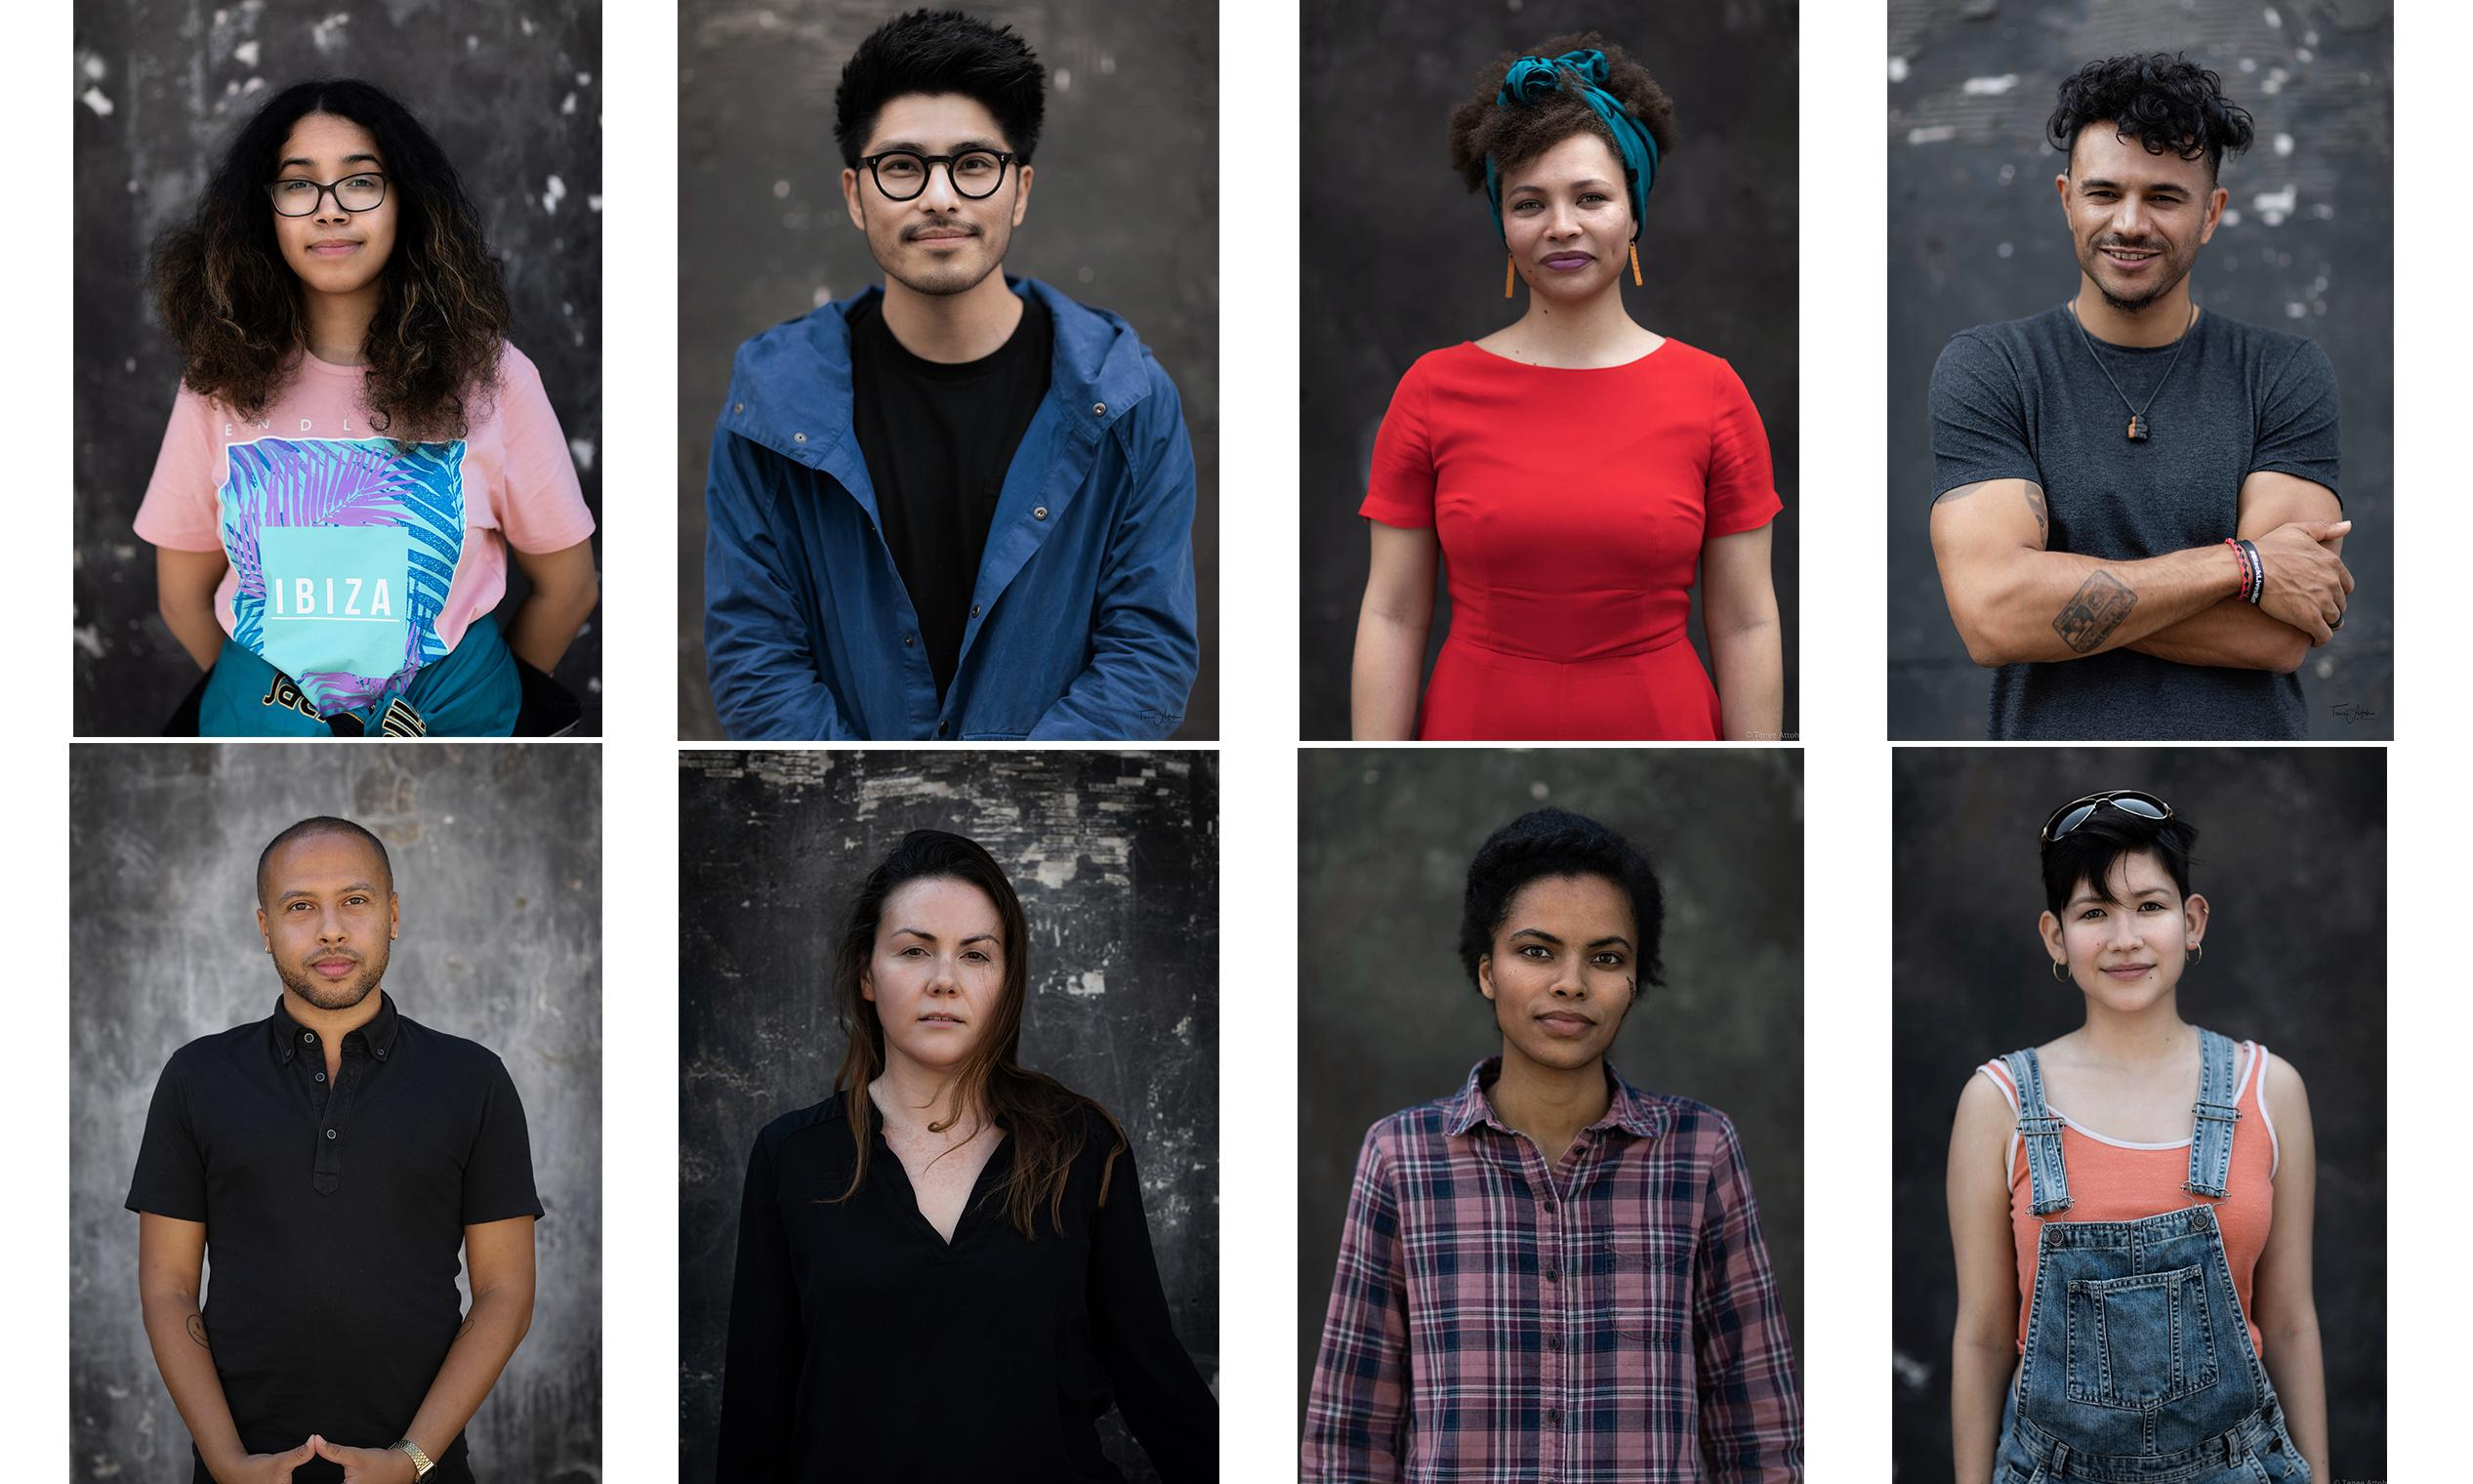 The mixed-race experience: 'There are times I feel like the odd one out'